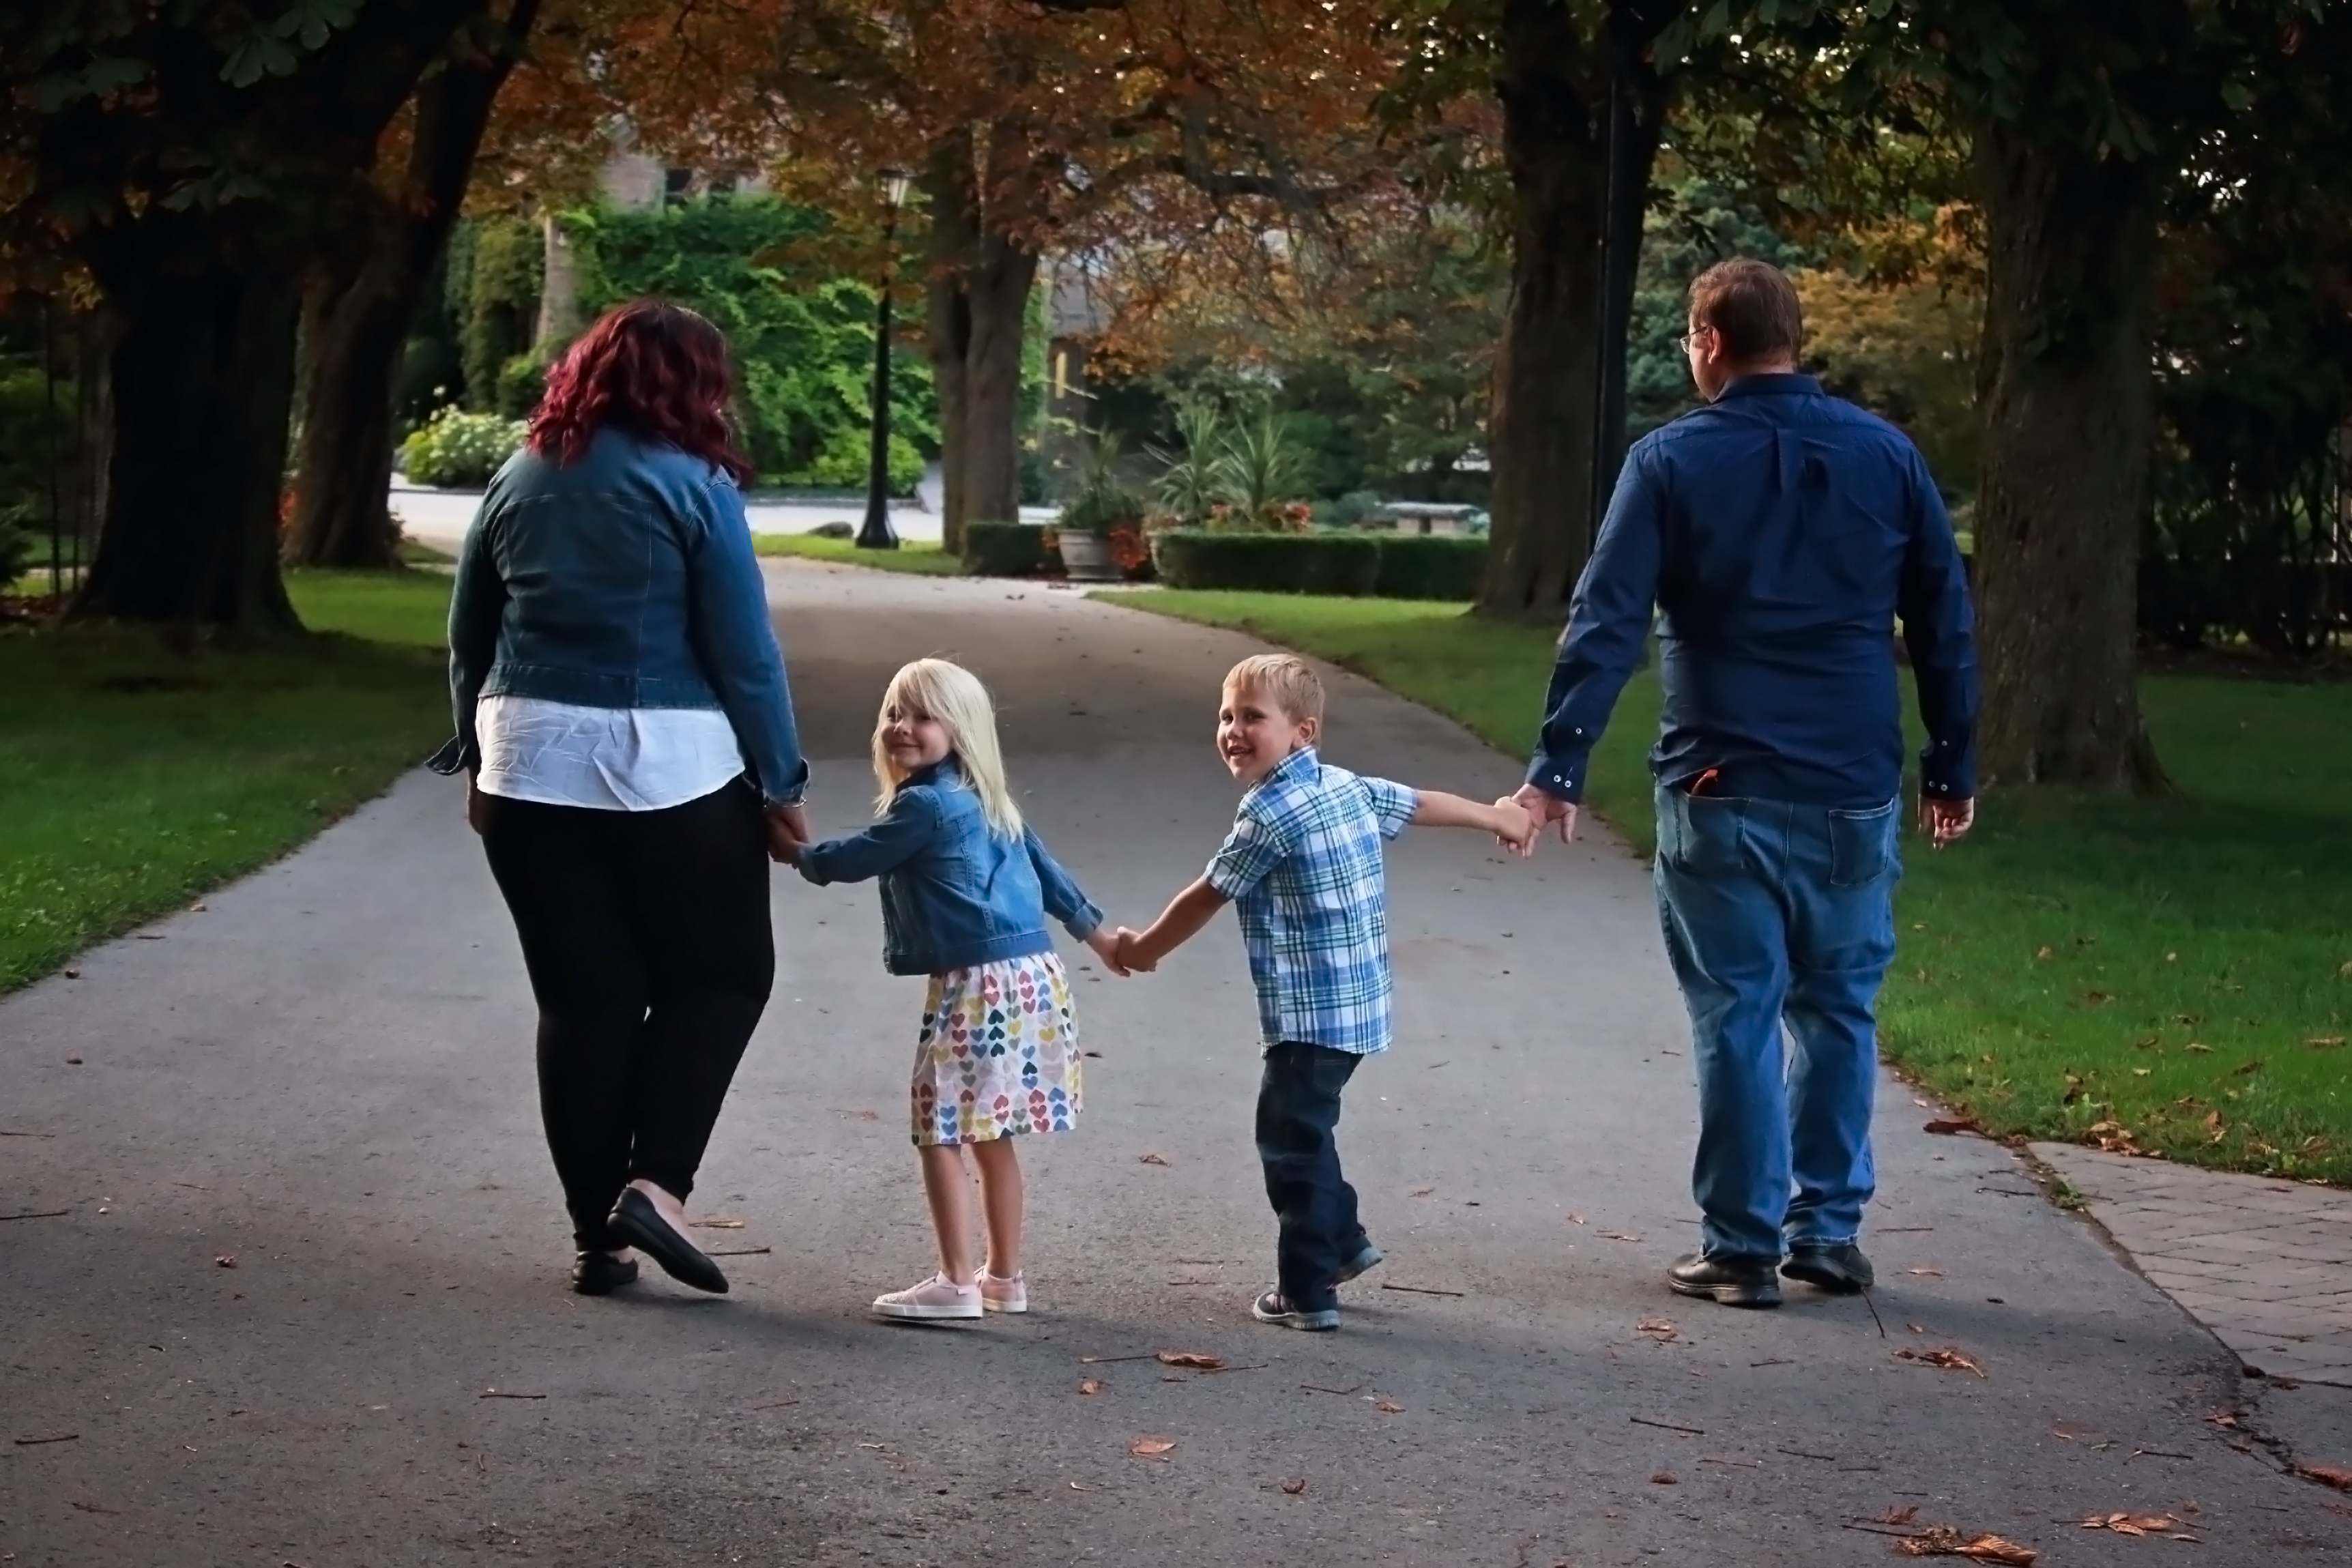 St. Catharine's family photographer